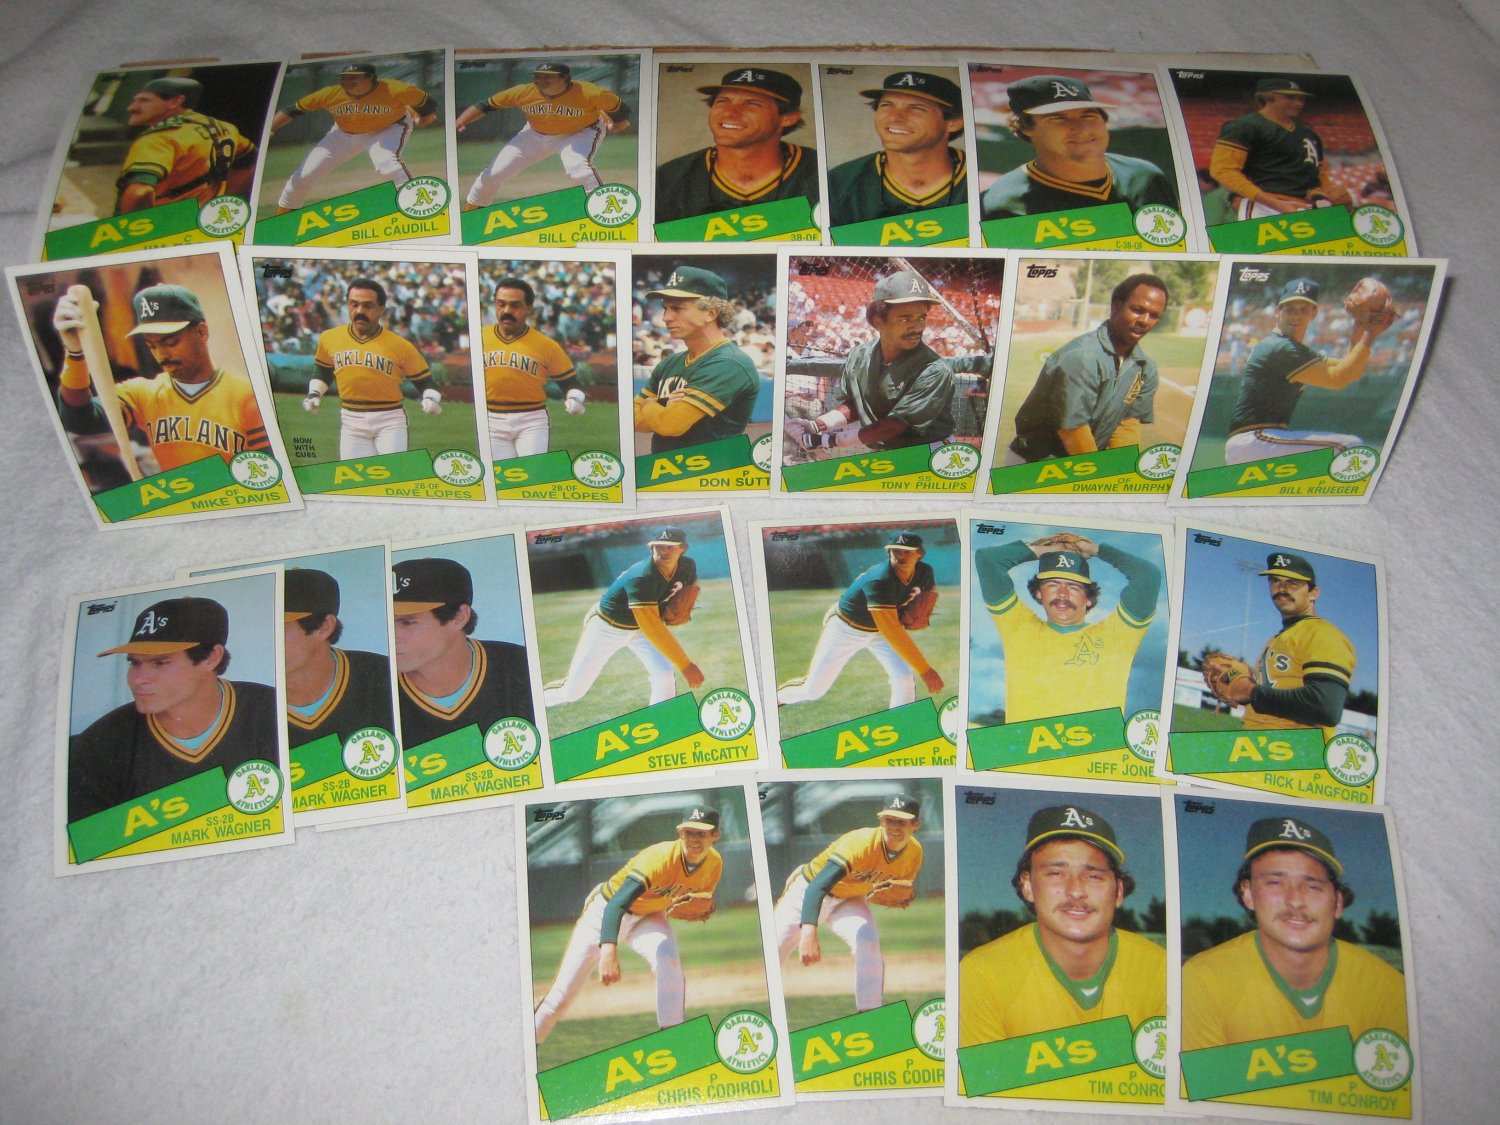 OAKLAND A'S 1985 TOPPS BASEBALL CARDS TEAM LOT FREE SHIPPING !!!